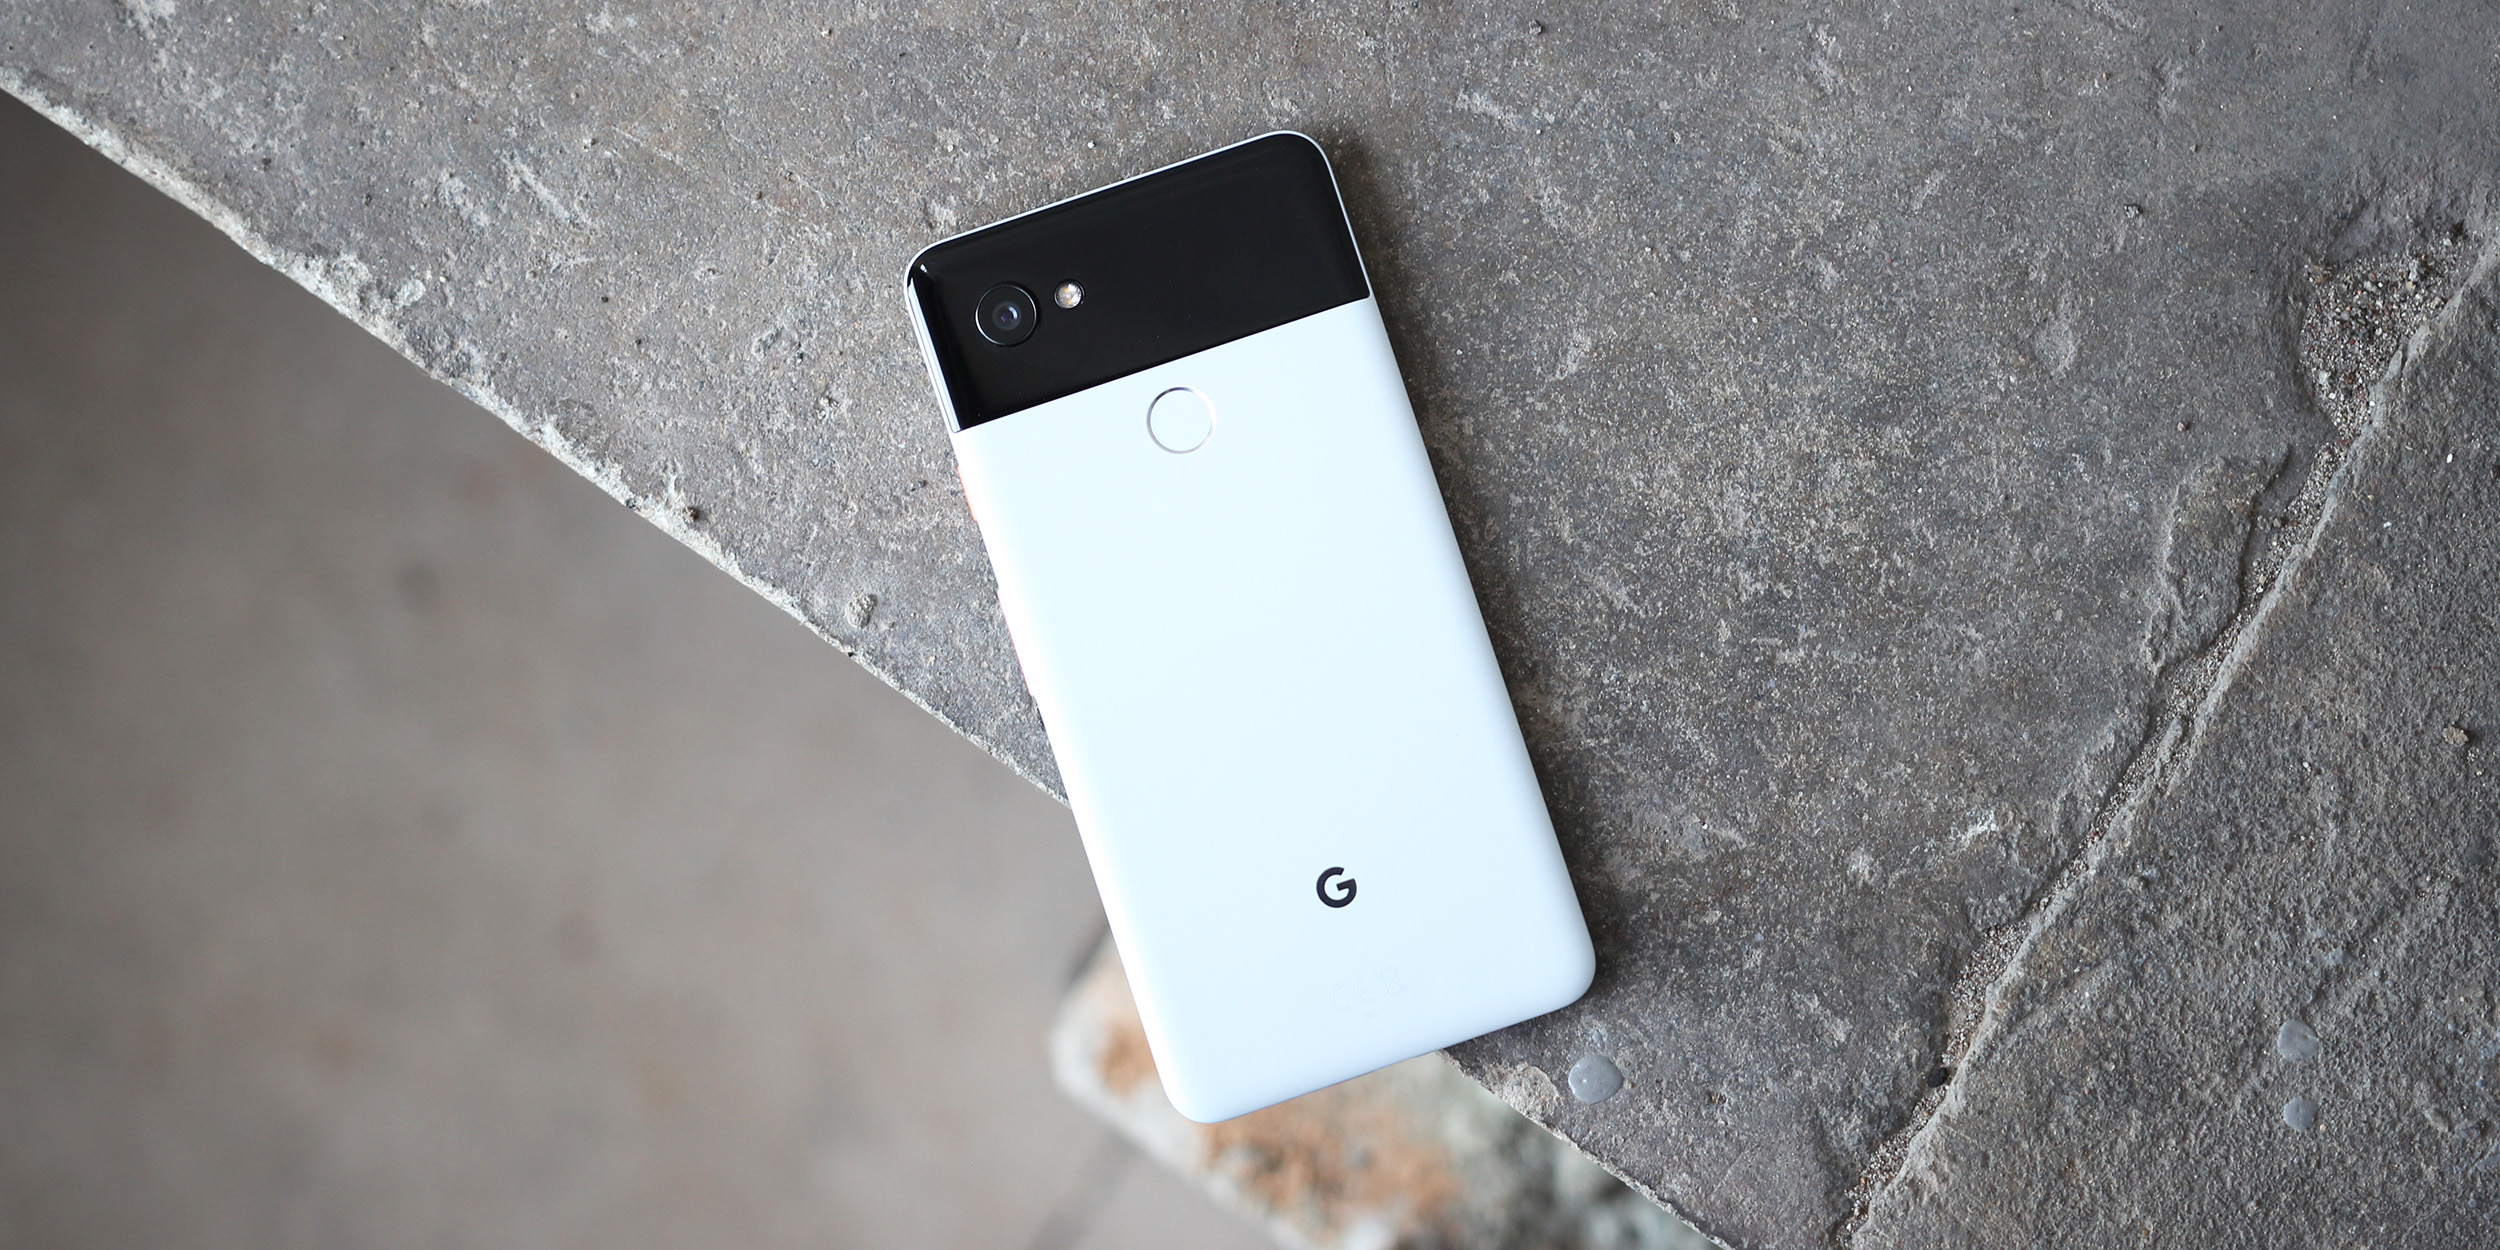 google loses head of pixel visual core titan and other chip development to facebook